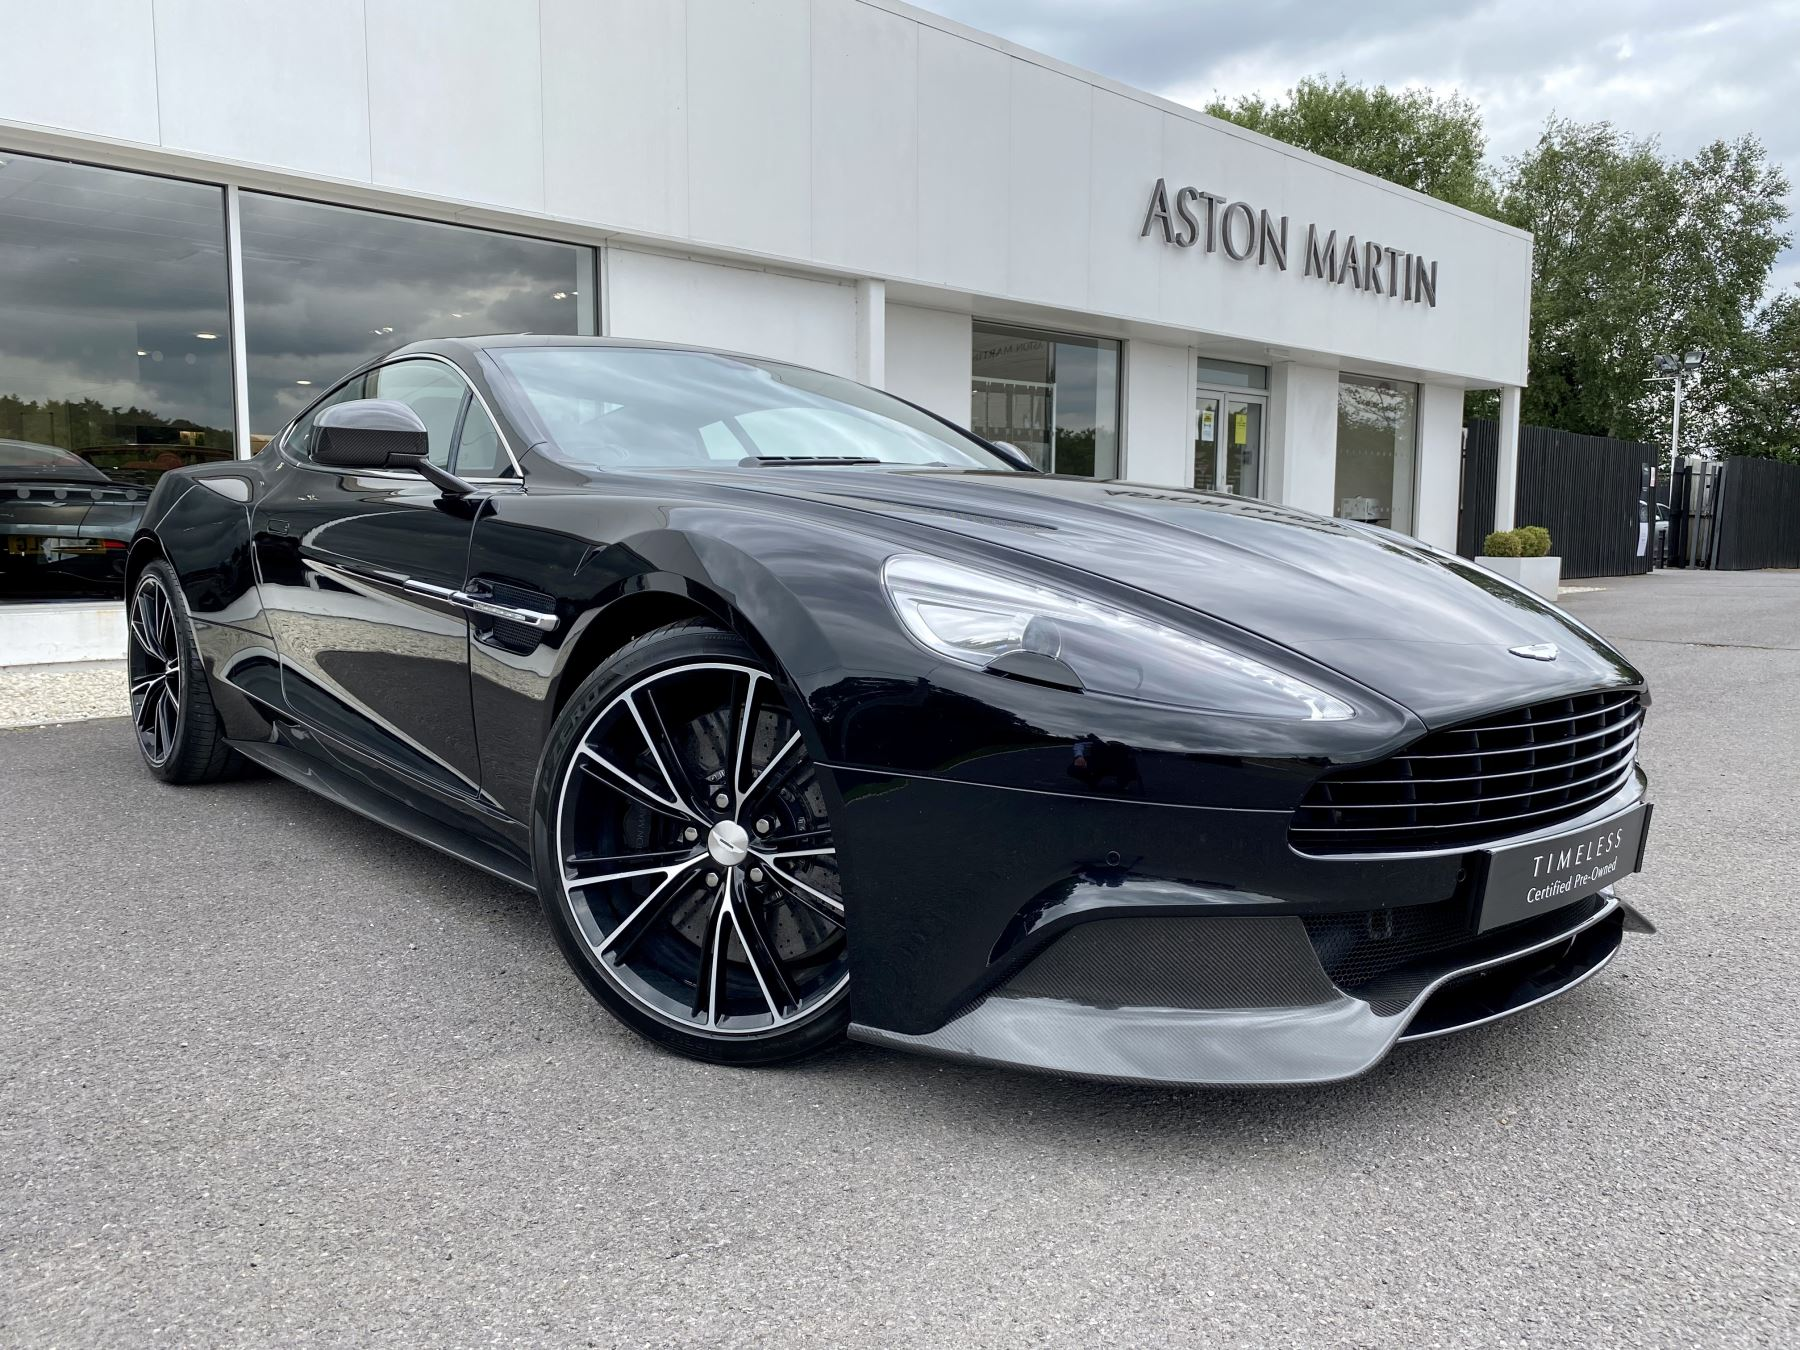 Aston Martin Vanquish V12 [568] 2+2 2dr Touchtronic 3 8 Speed, 2 Owners From New, Onyx Black, Bang And Olufsen. 5.9 Automatic 4 door Coupe